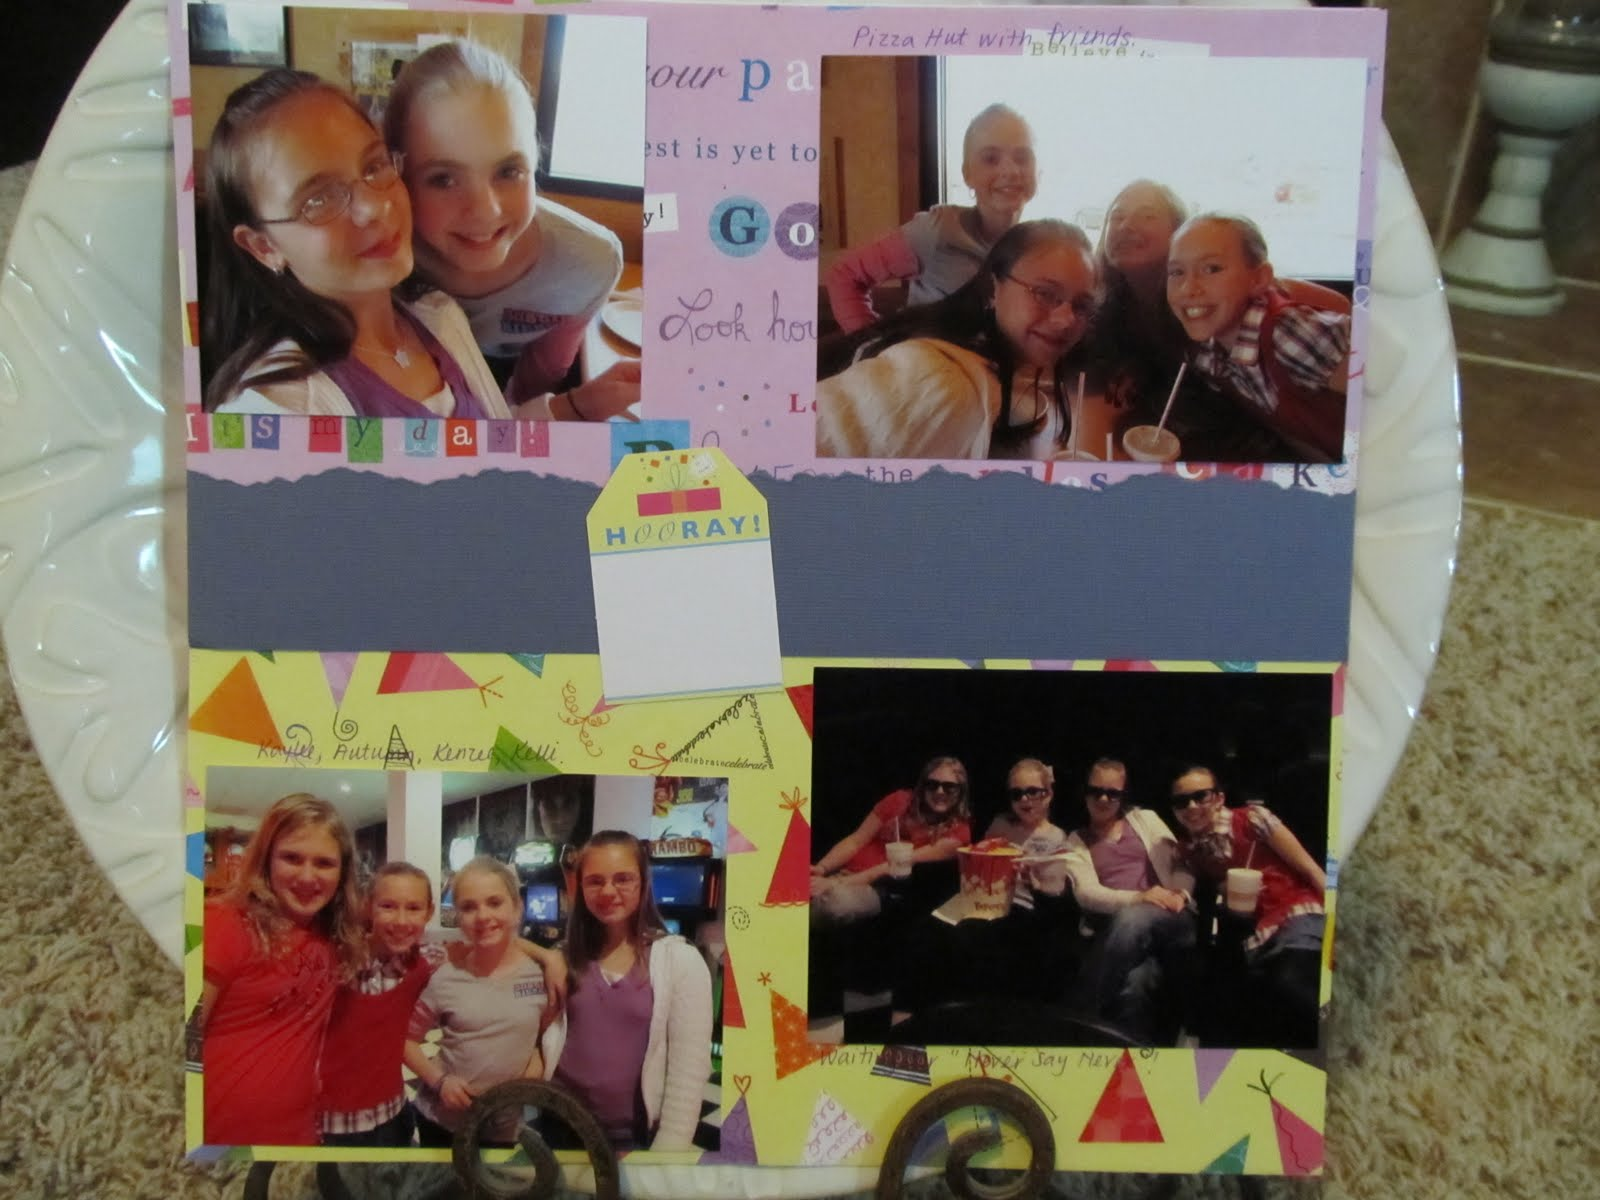 Justin bieber scrapbook ideas - The Girl S 12th Birthday Celebration I Got This Fun Kit Of Paper Diecuts From Goodwill It Just Worked Perfect For These Pictures